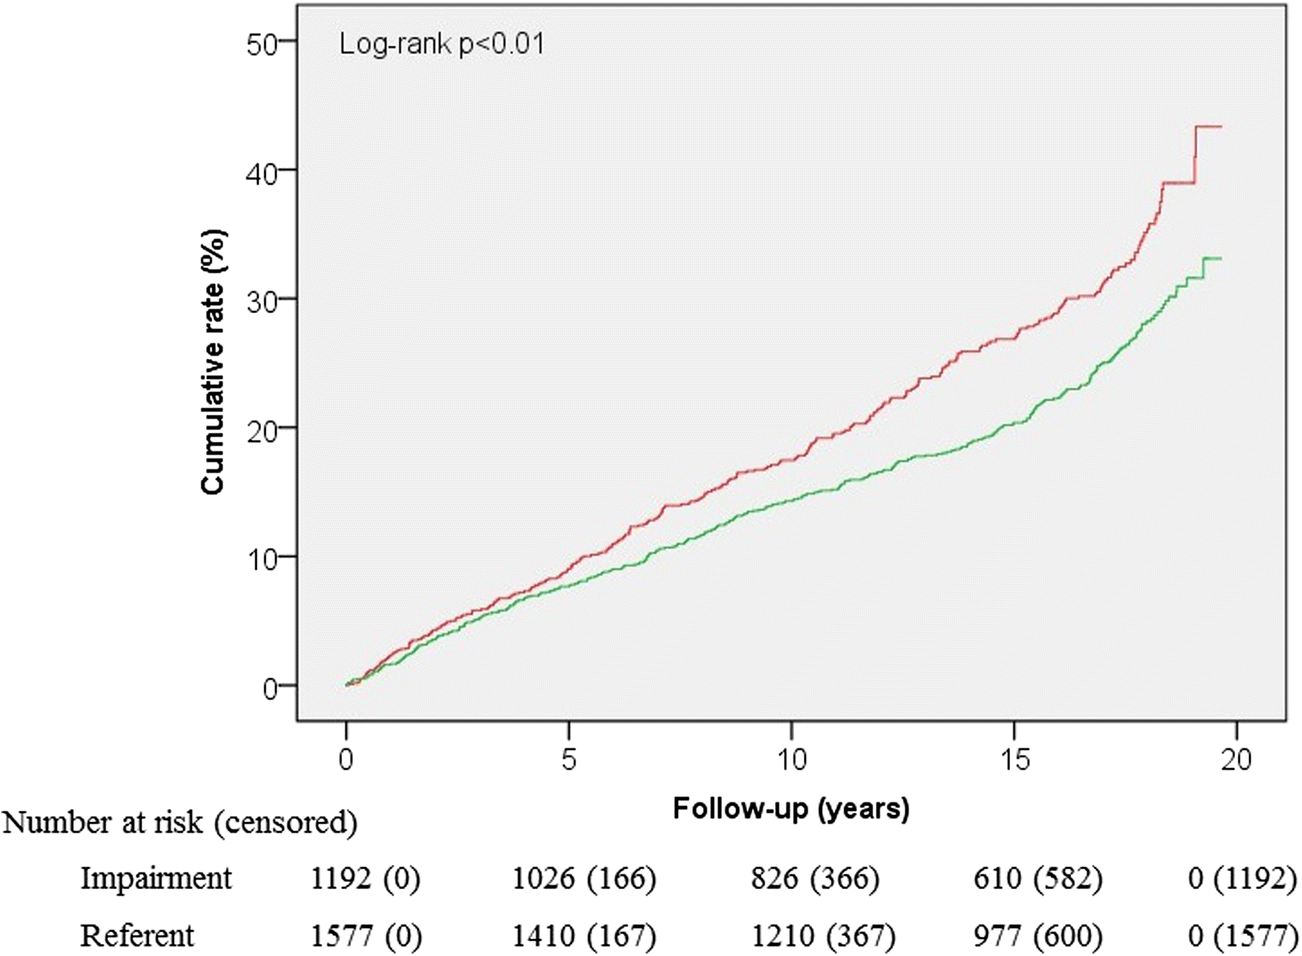 Long-term effects of functional impairment on fracture risk